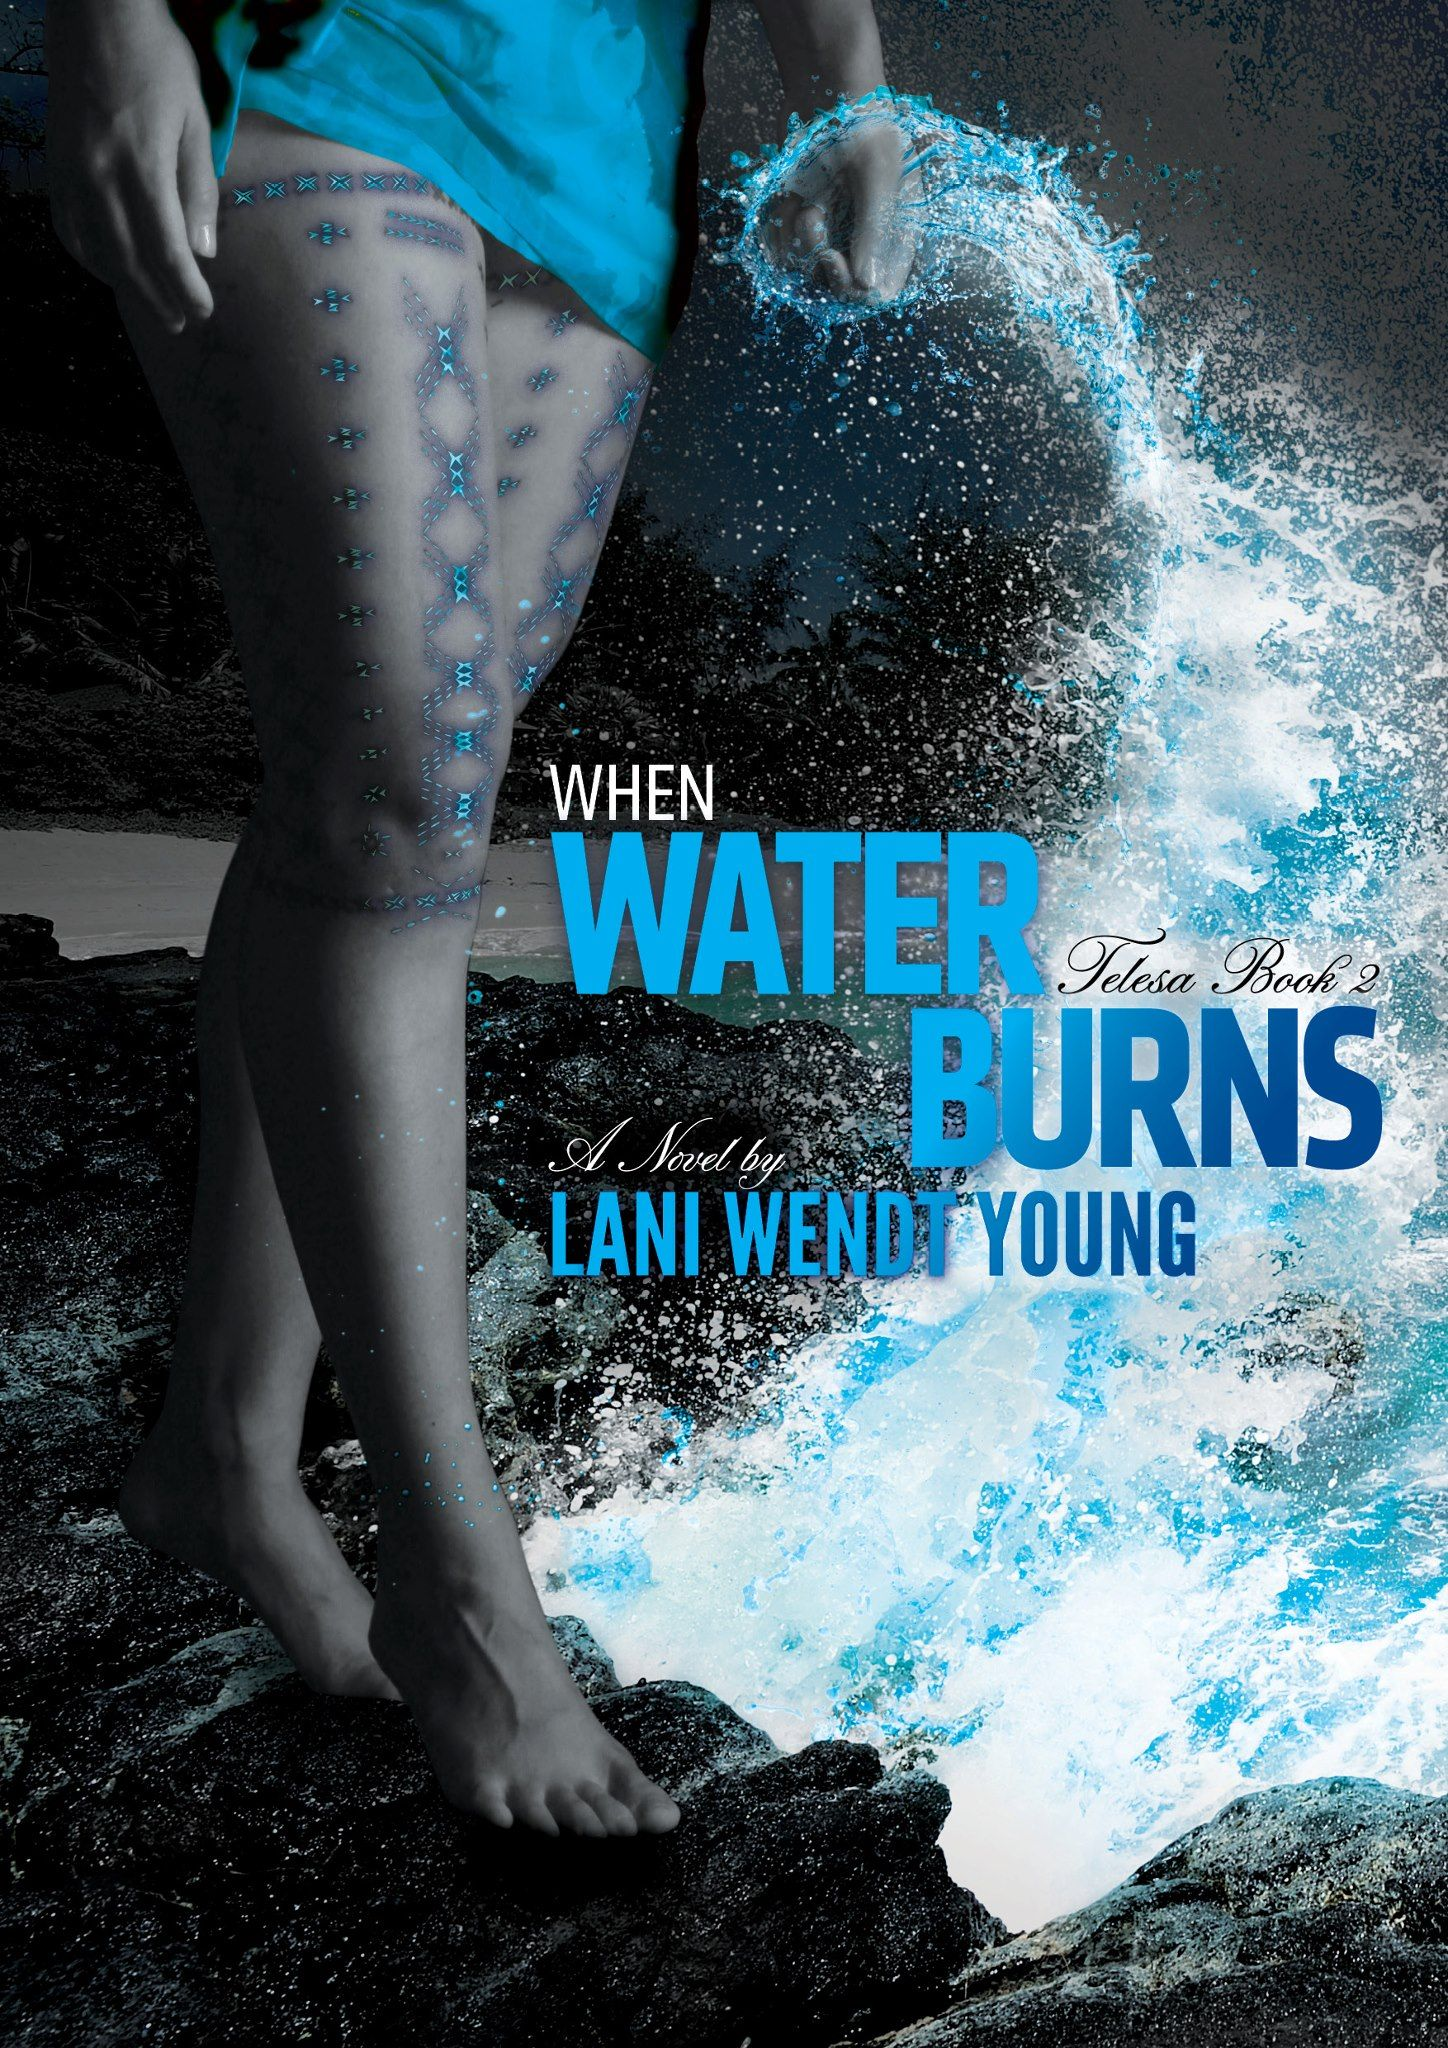 Telesa: When Water Burns By Lani Wendt Young  Ya Trilogy, Book Series Based